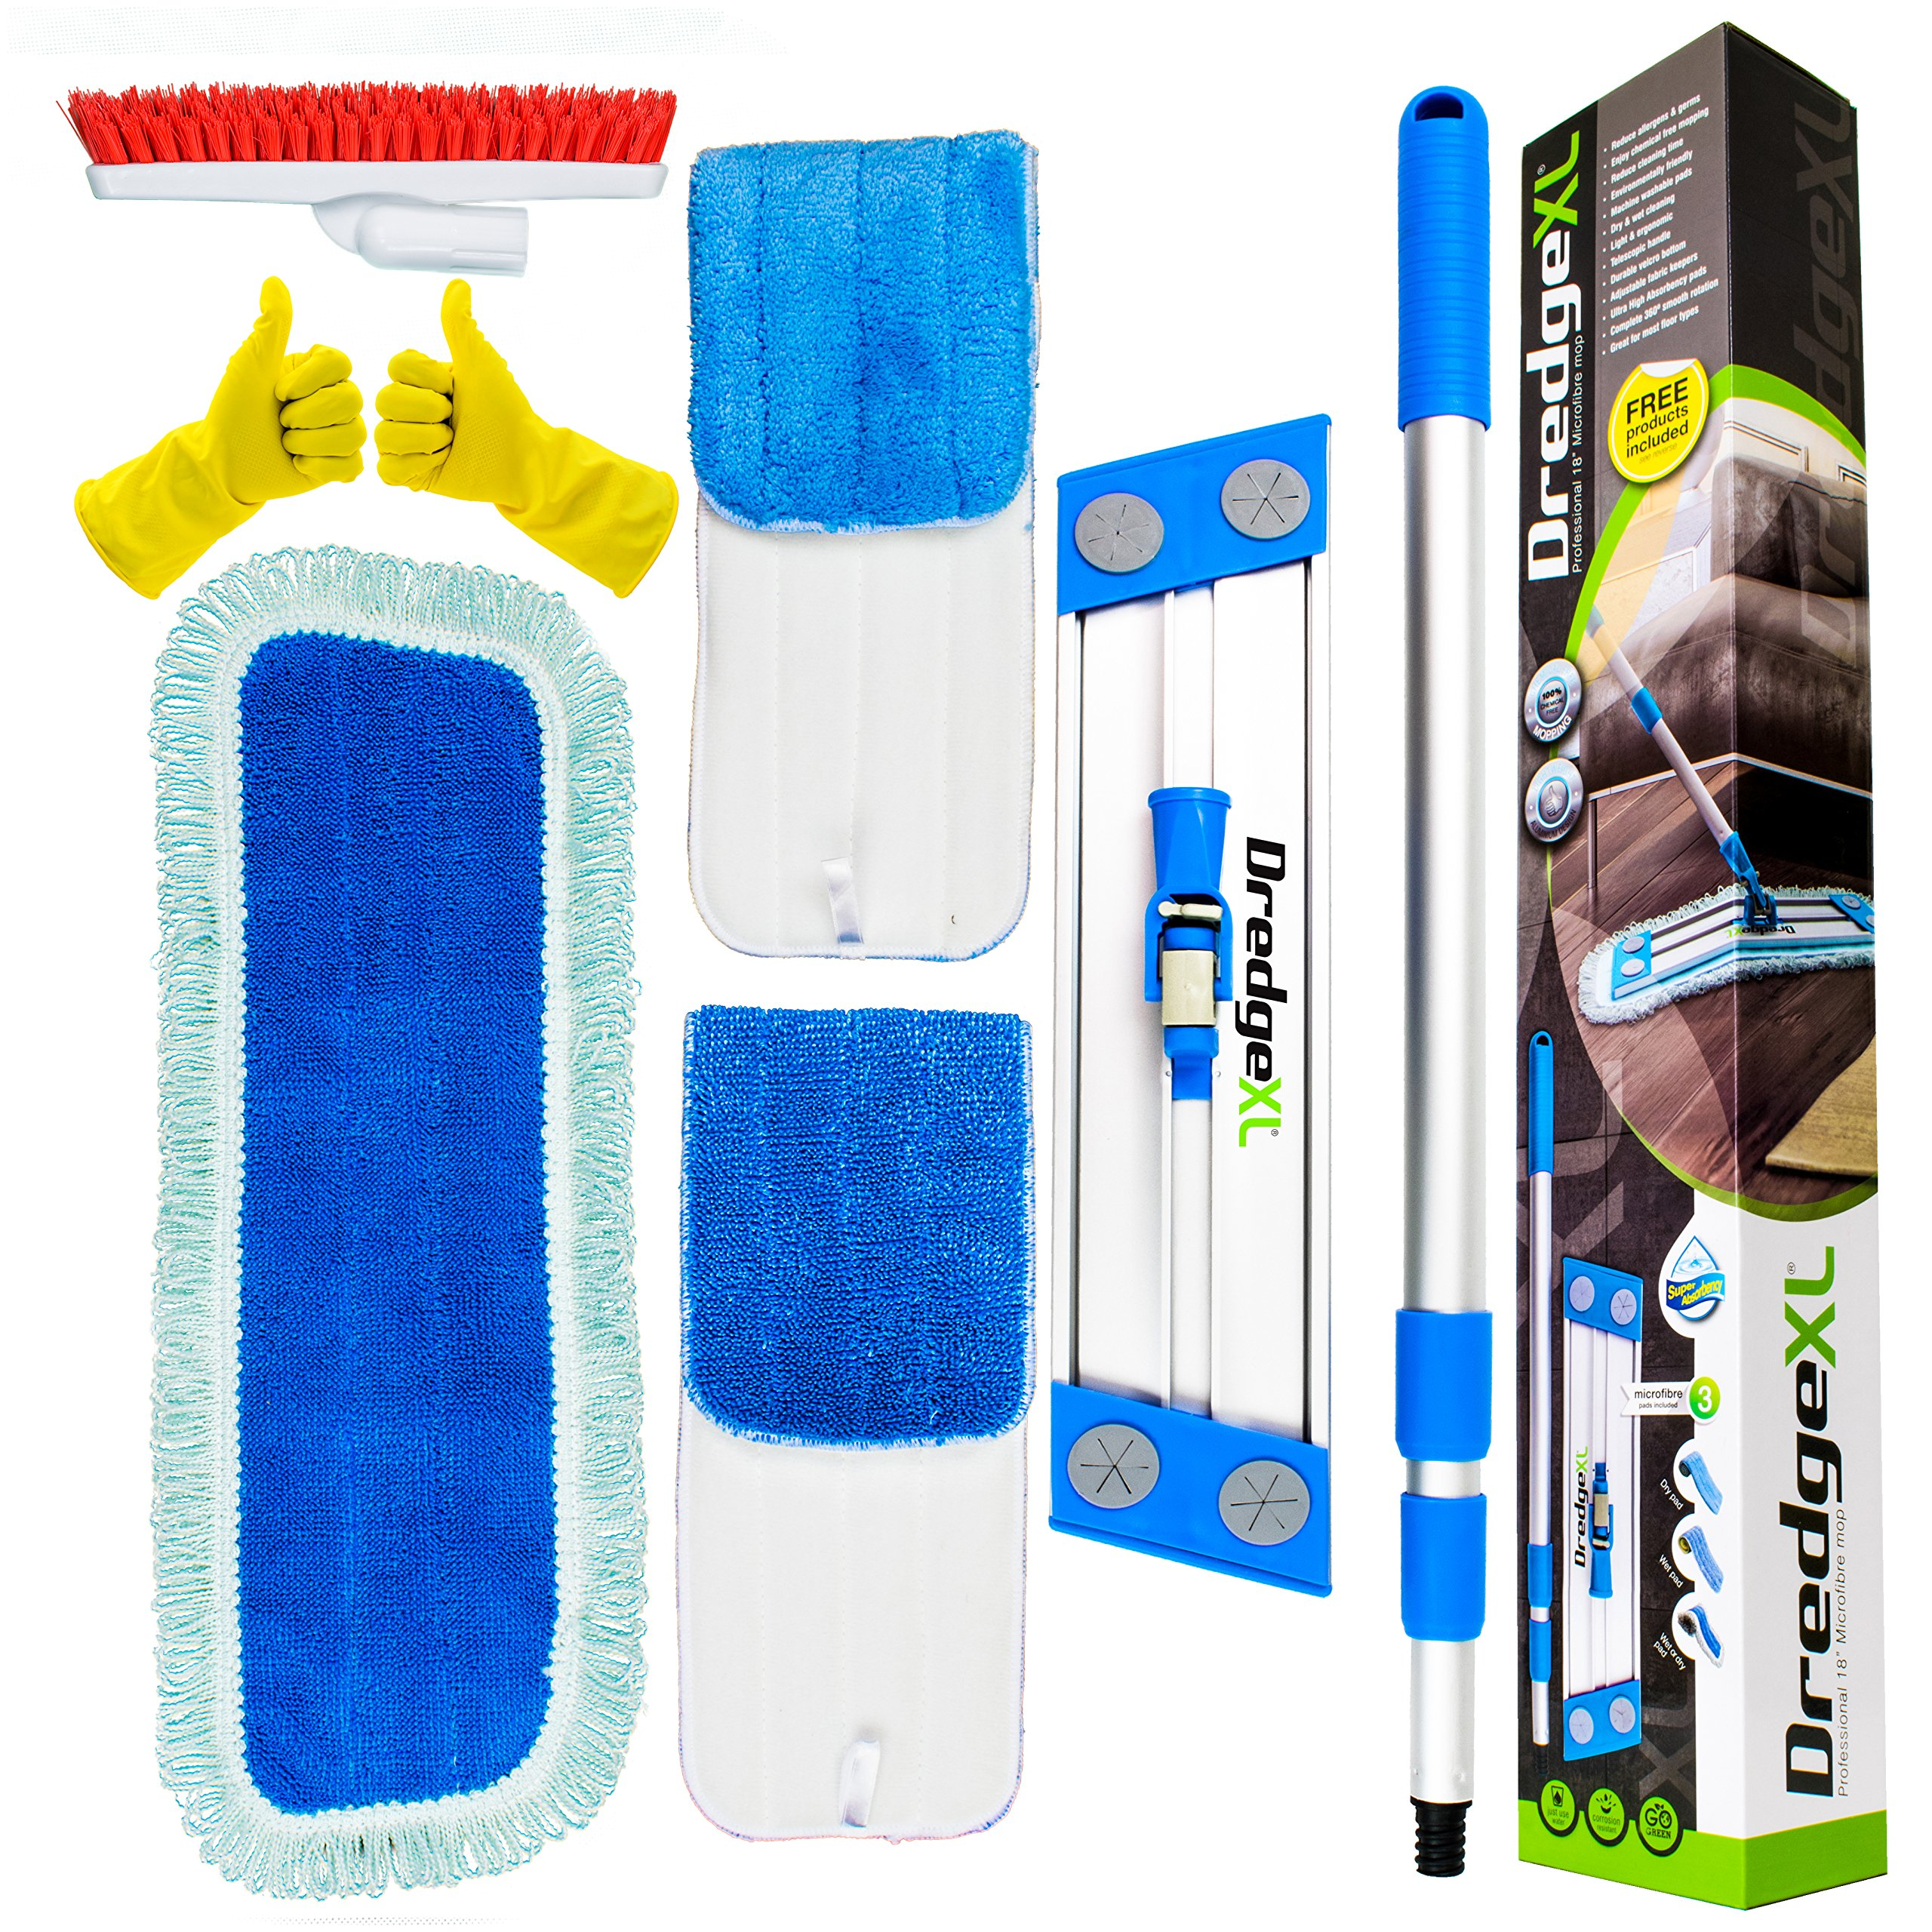 Temples Pride Professional 18'' Microfiber flat mop kit + 3 replacement wet & dry refill pads|Suits hardwood Tile Laminate Linoleum & Vinyl floor - Includes bonus grout/corner brush attachment & gloves